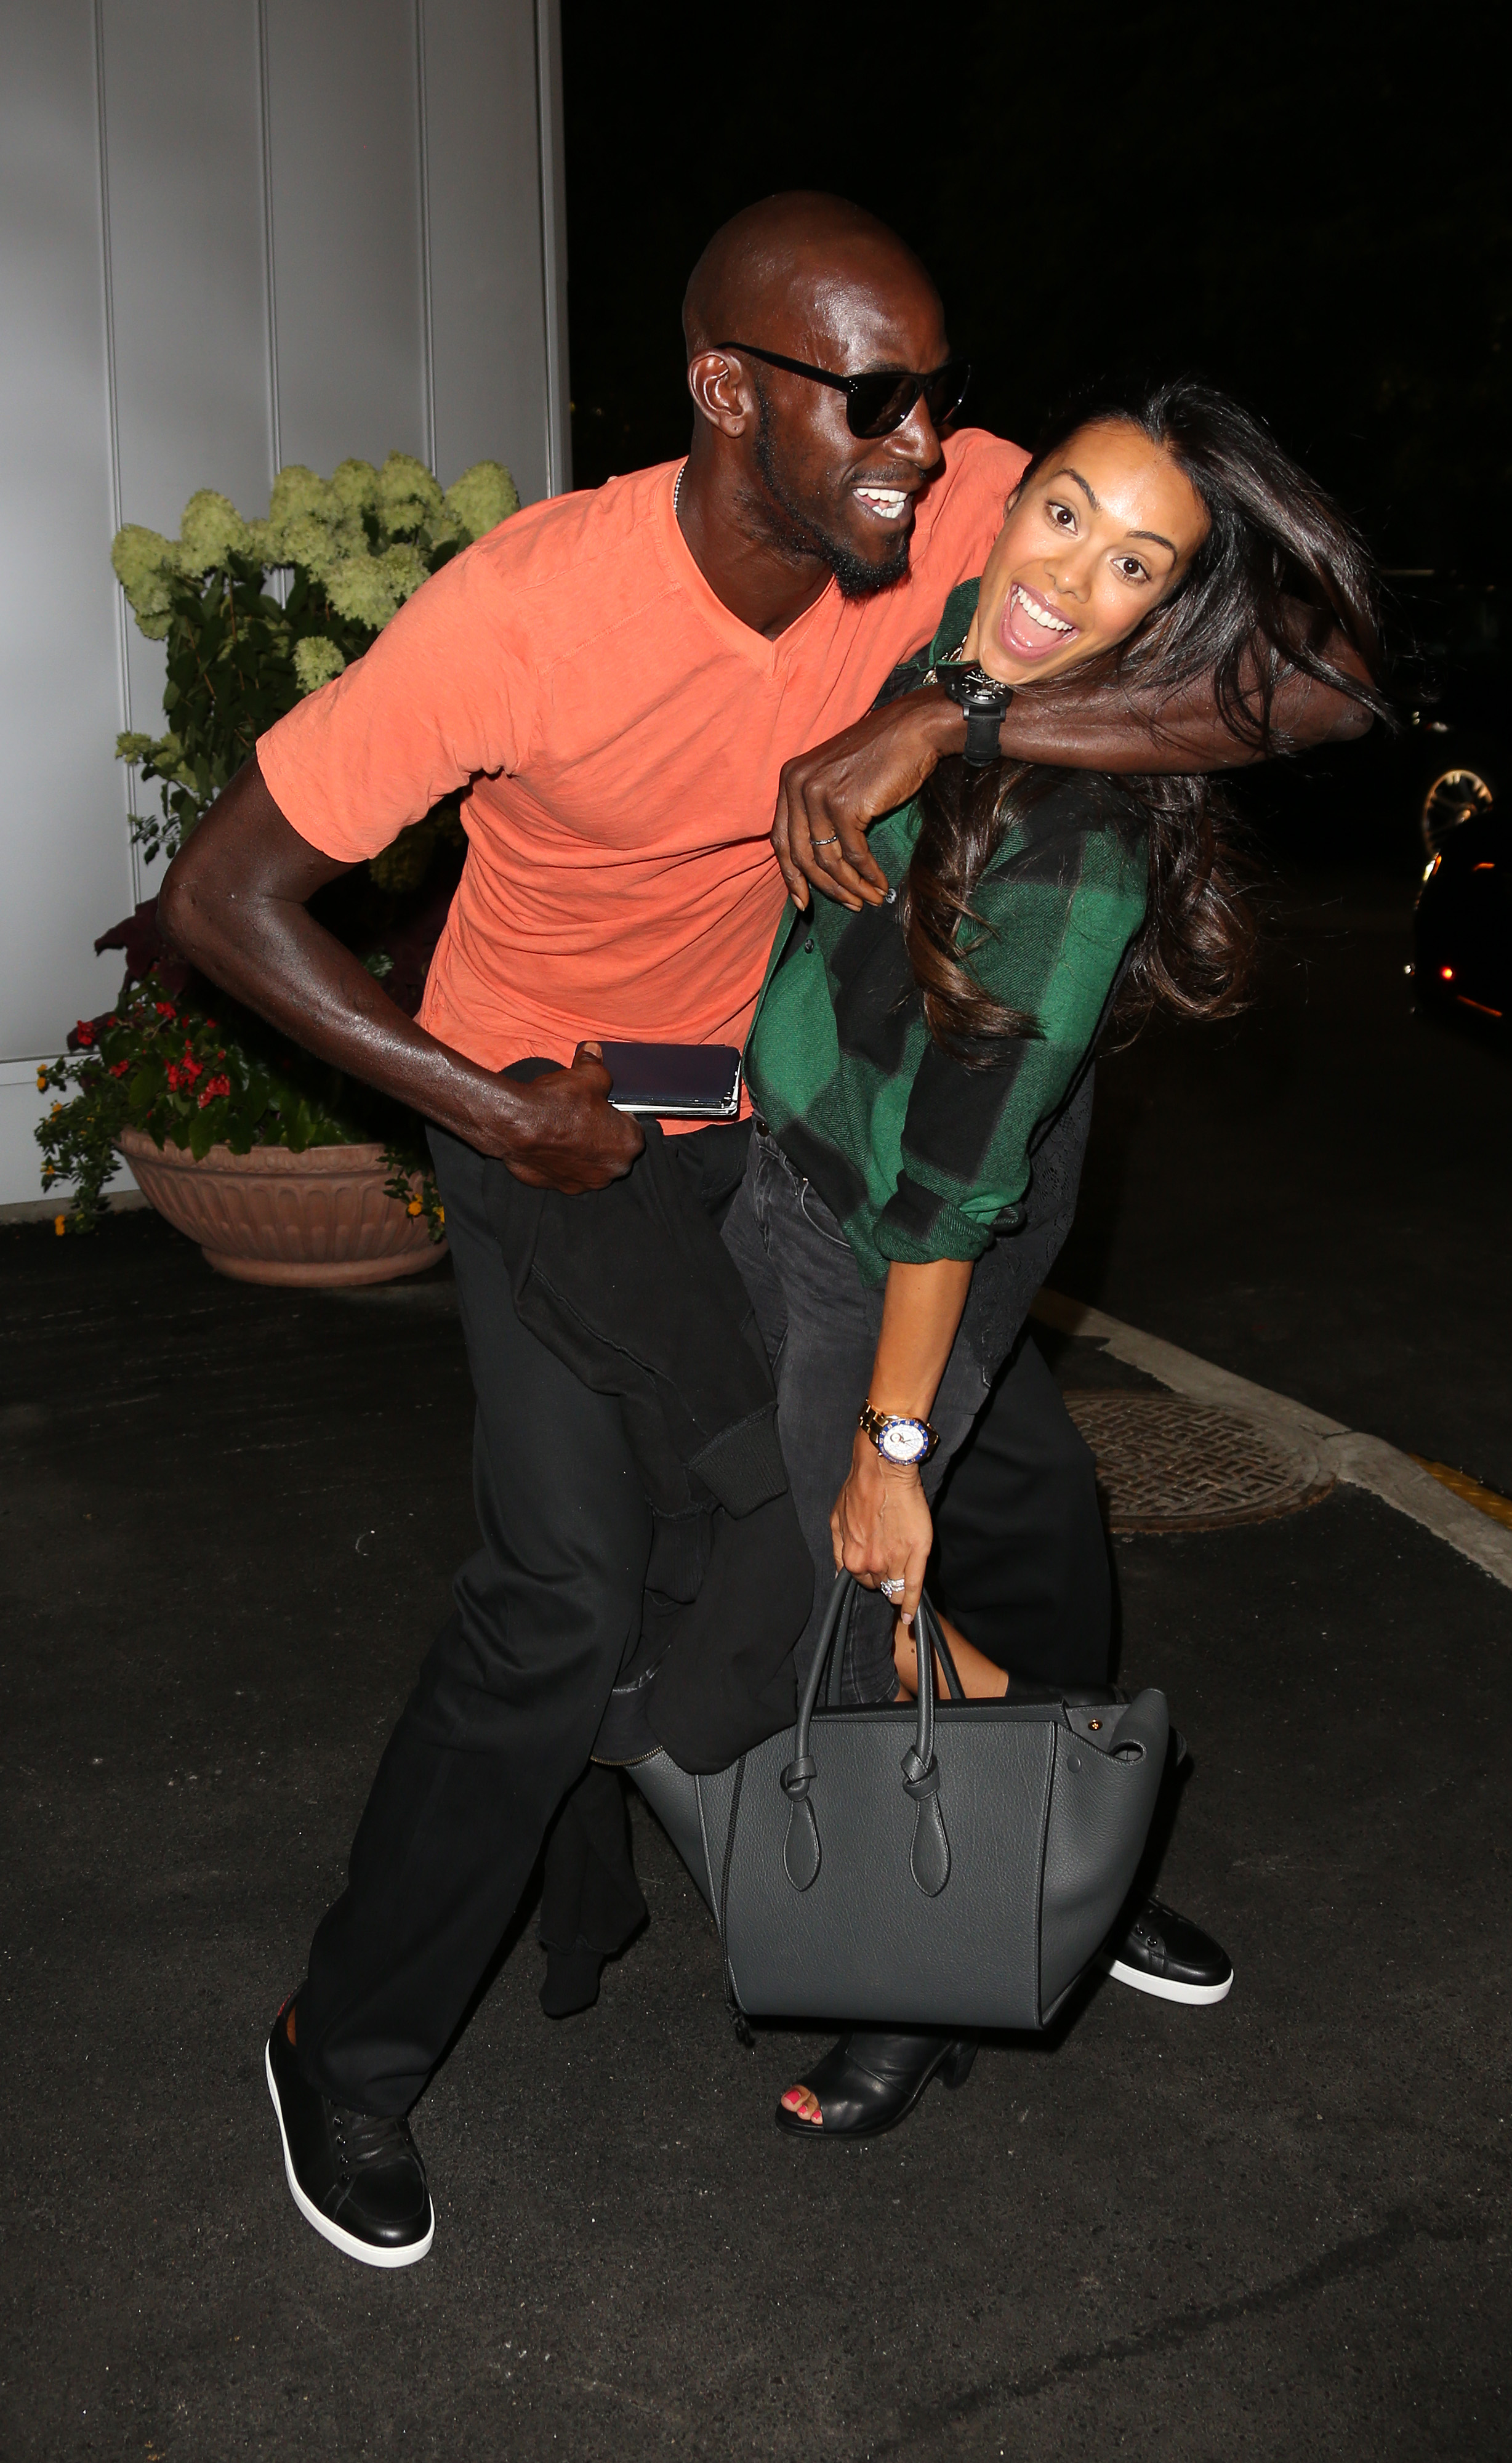 NBA Player Kevin Garnett's Wife Confronts His Jumpoff